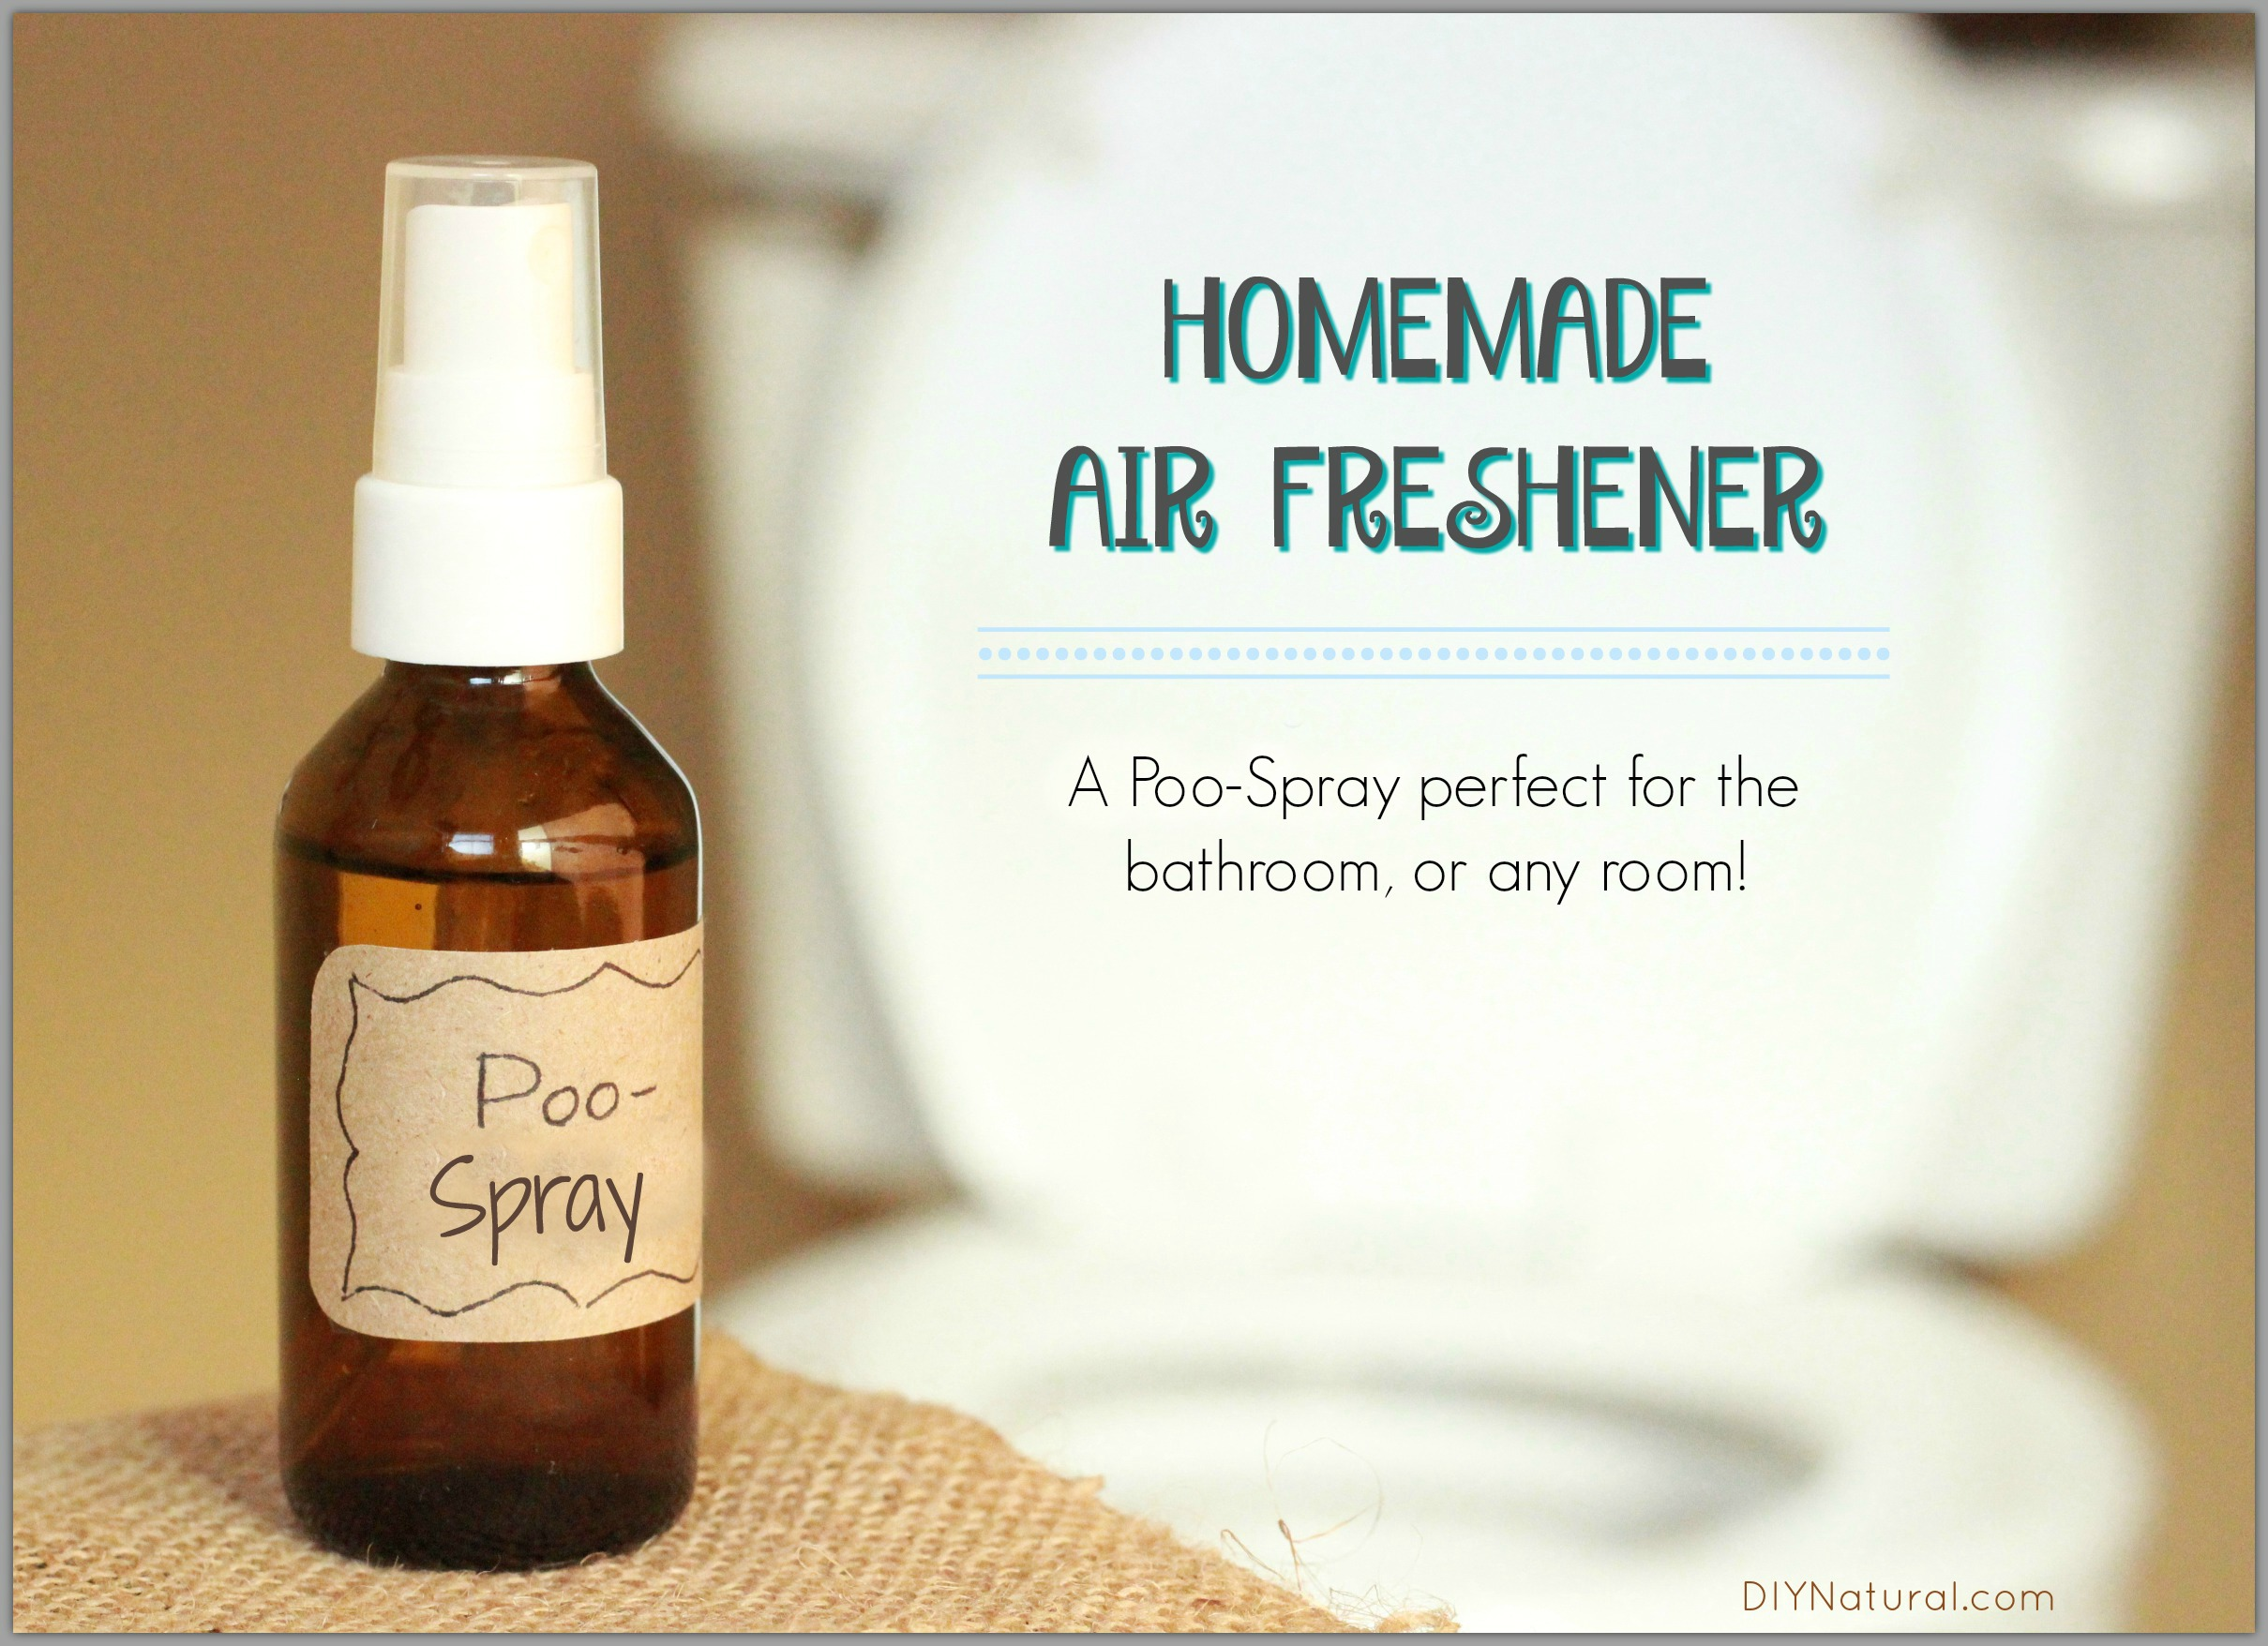 Homemade air freshener a natural diy poo spray for Homemade diy